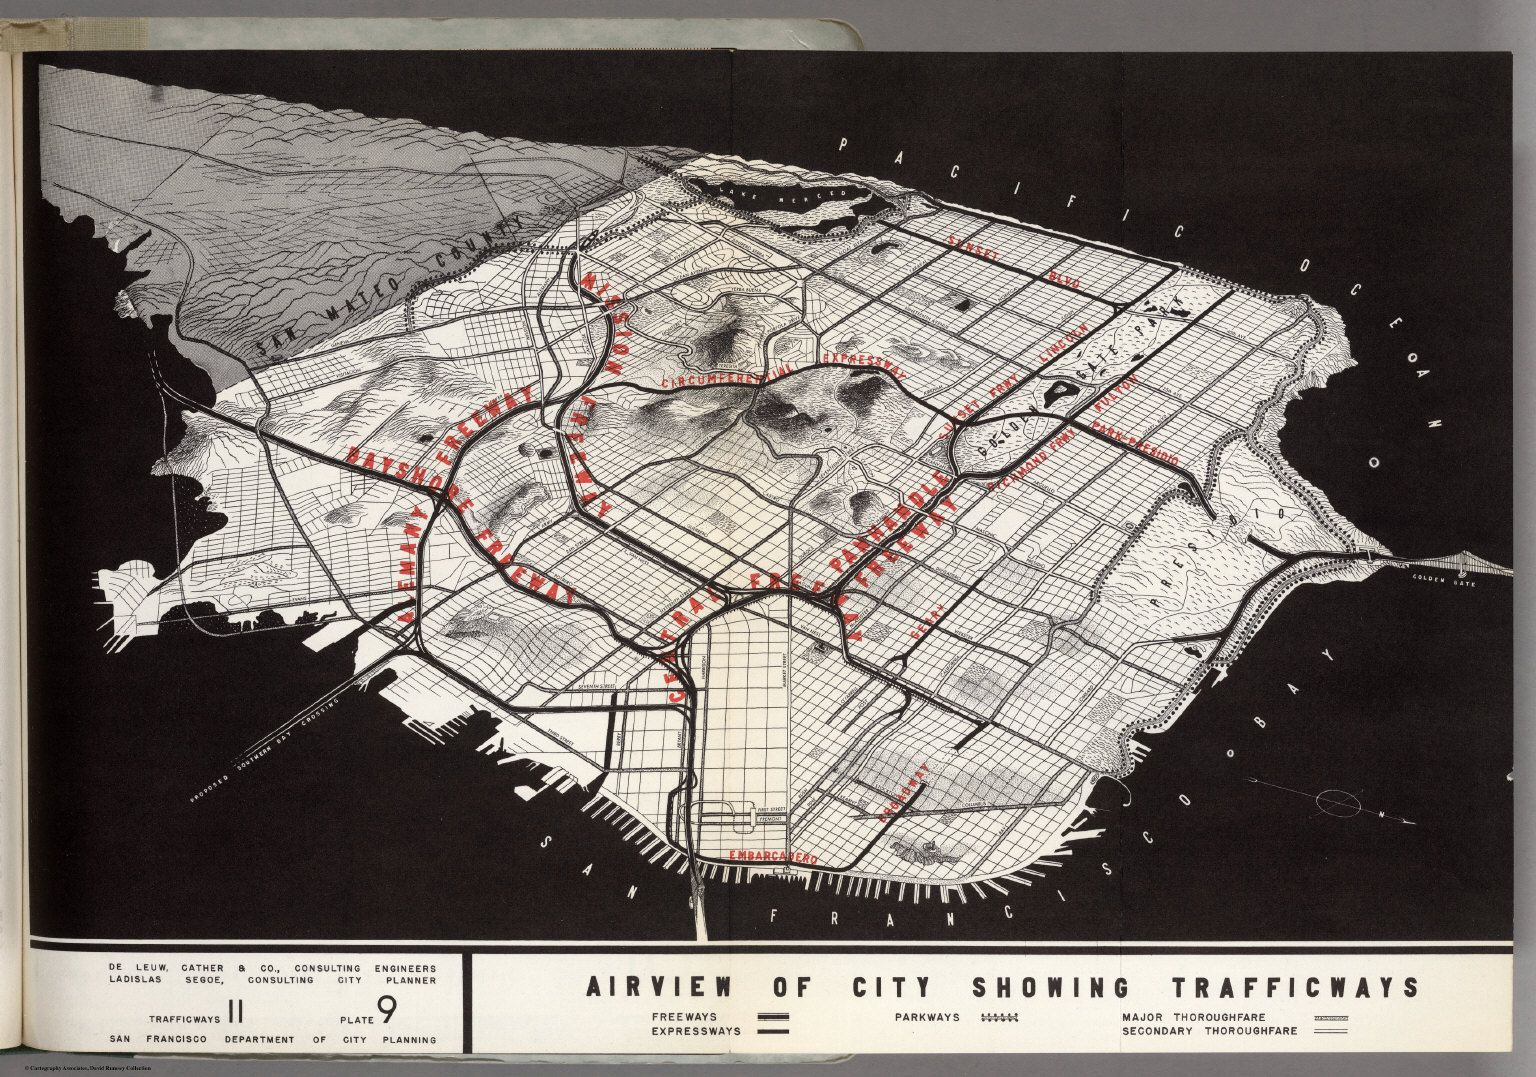 Airview of San Francisco showing trafficways 1948